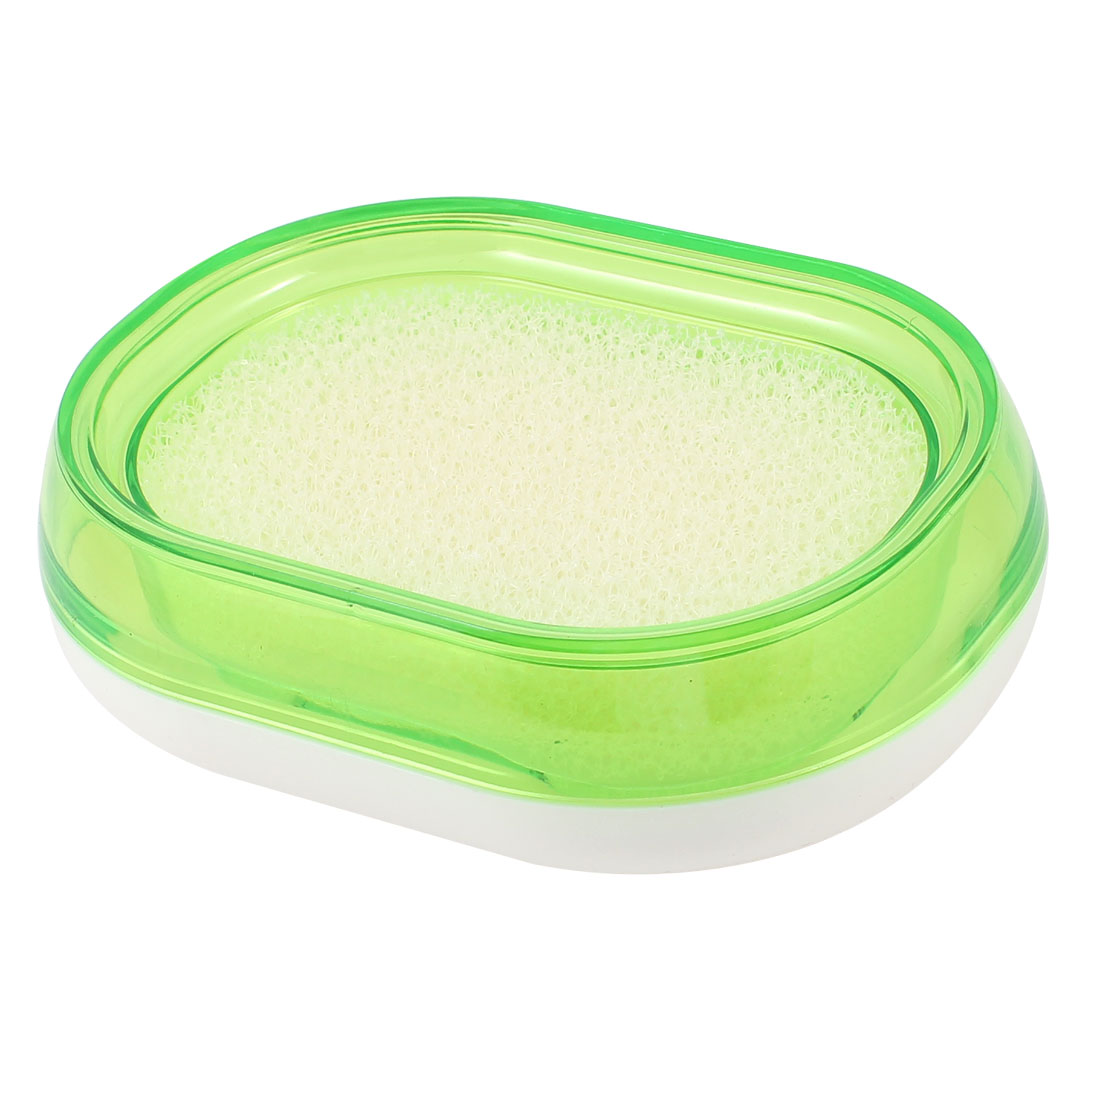 Bathroom Green White Plastic Dual Layer Soap Holder Dish Case Box